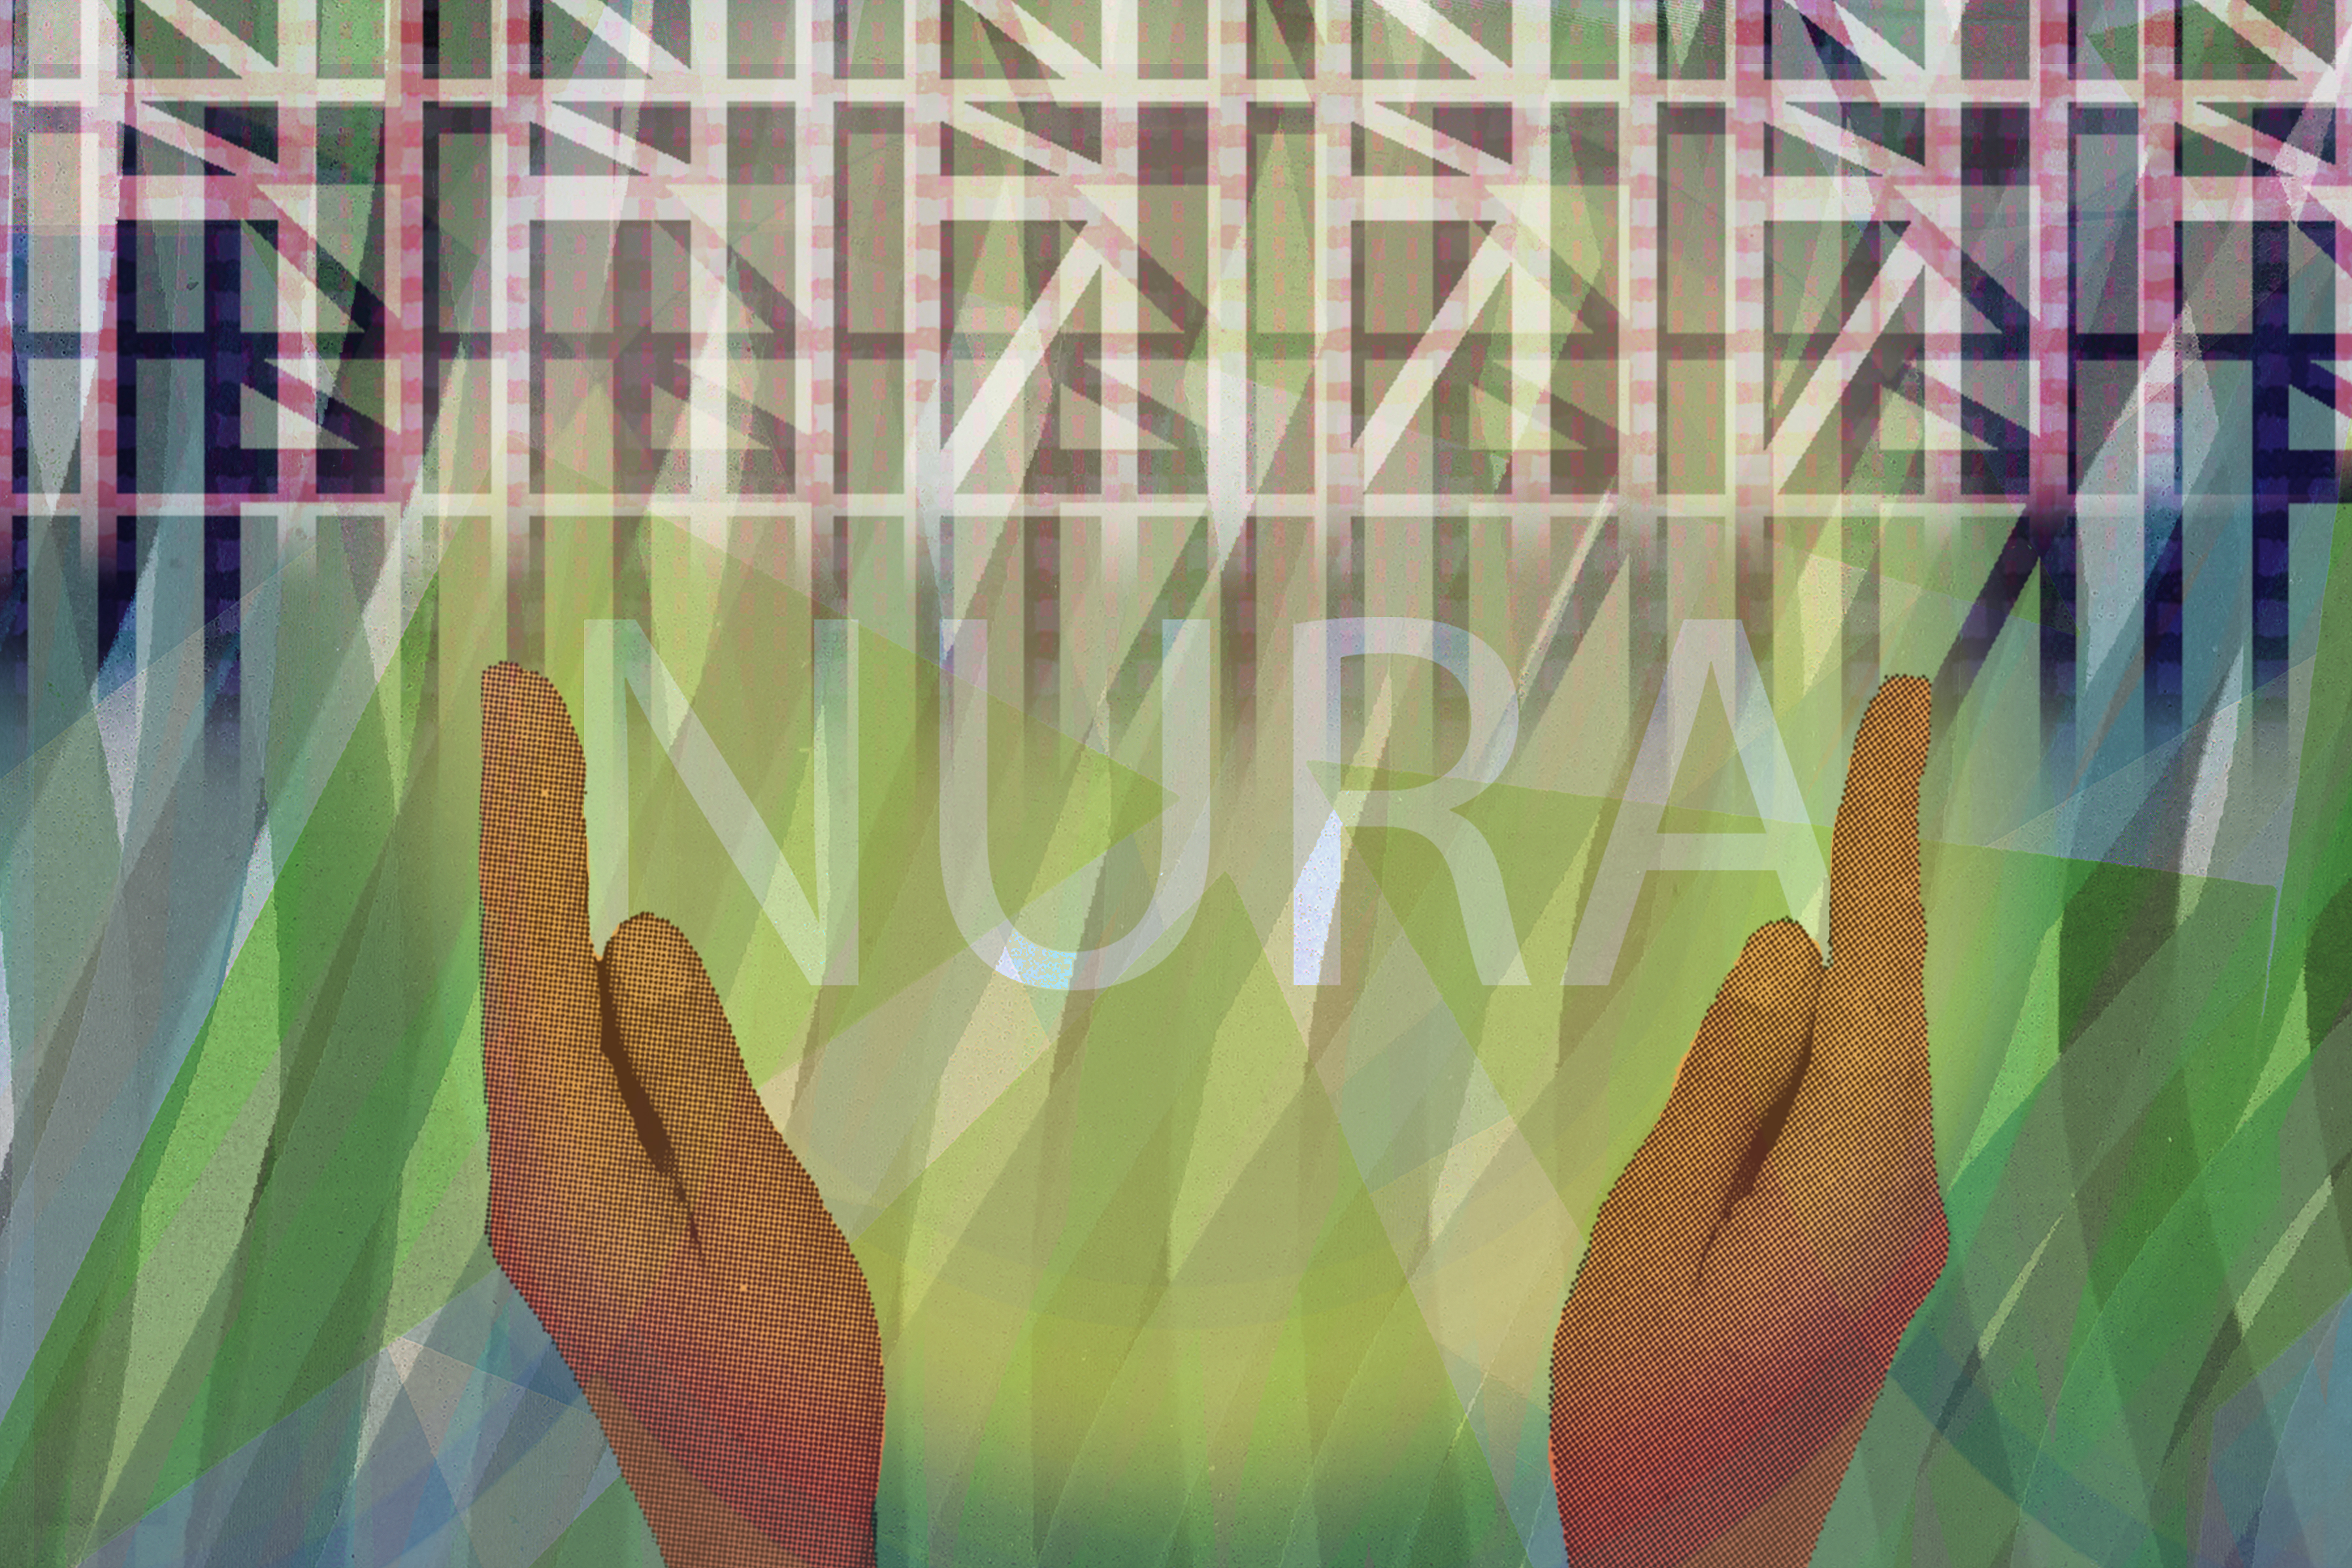 An illustration featuring two hands which rest either side of the word 'NURA', over a collage background of greenery meeting an urban environment